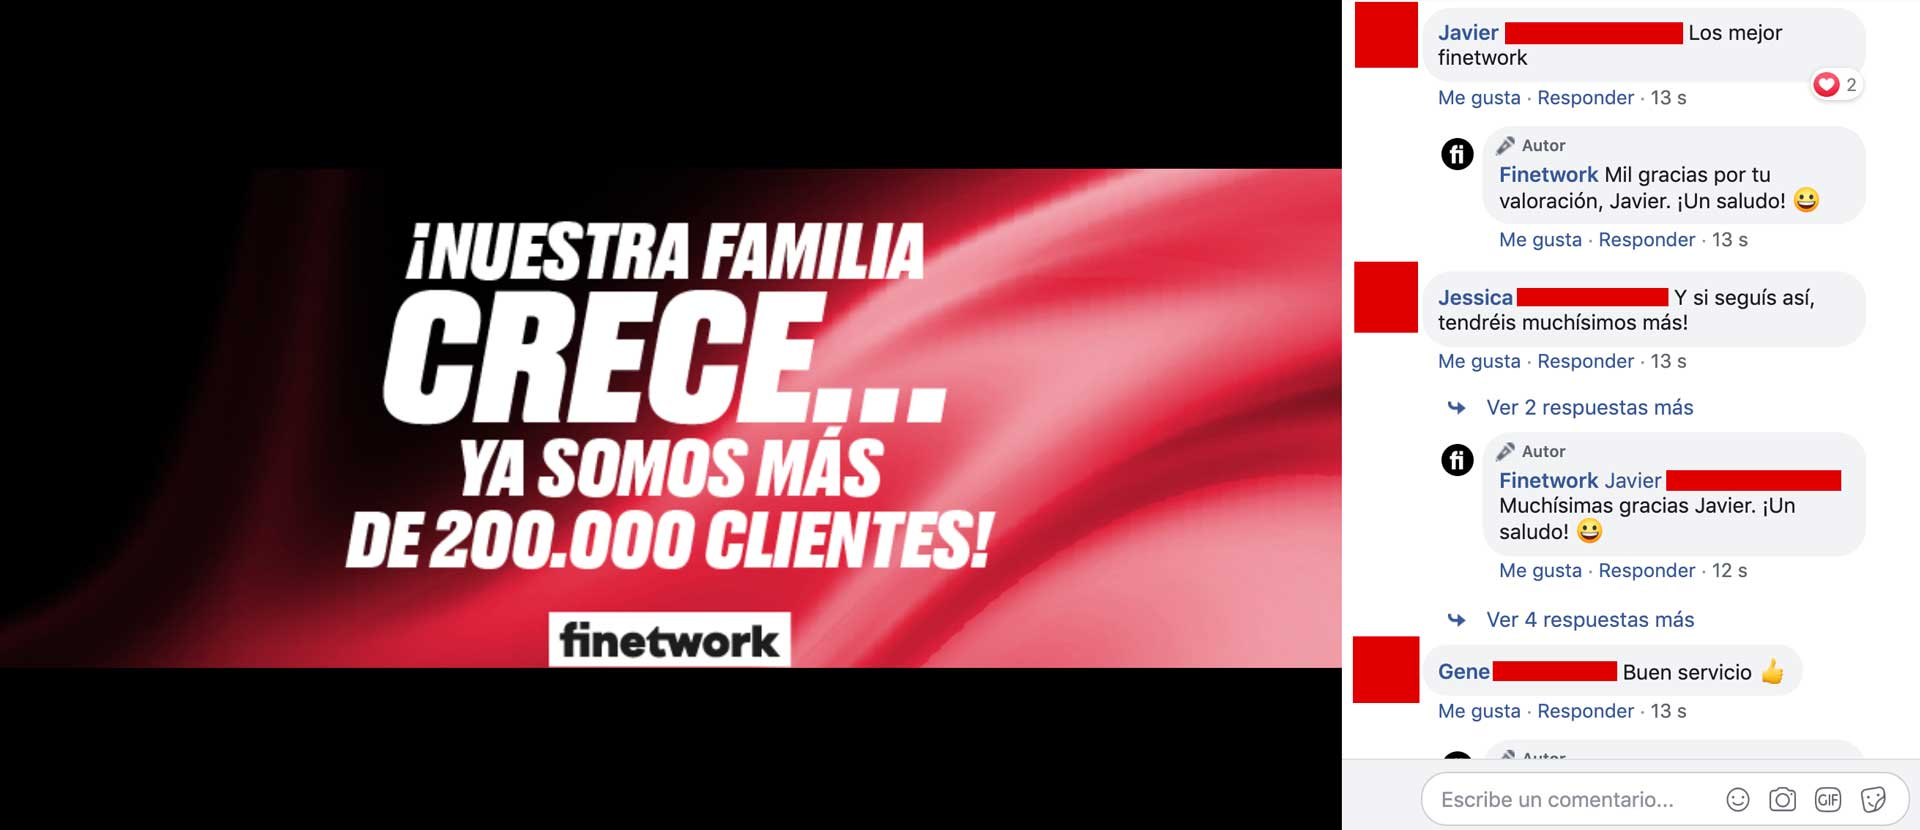 Finetwork, opiniones en Facebook